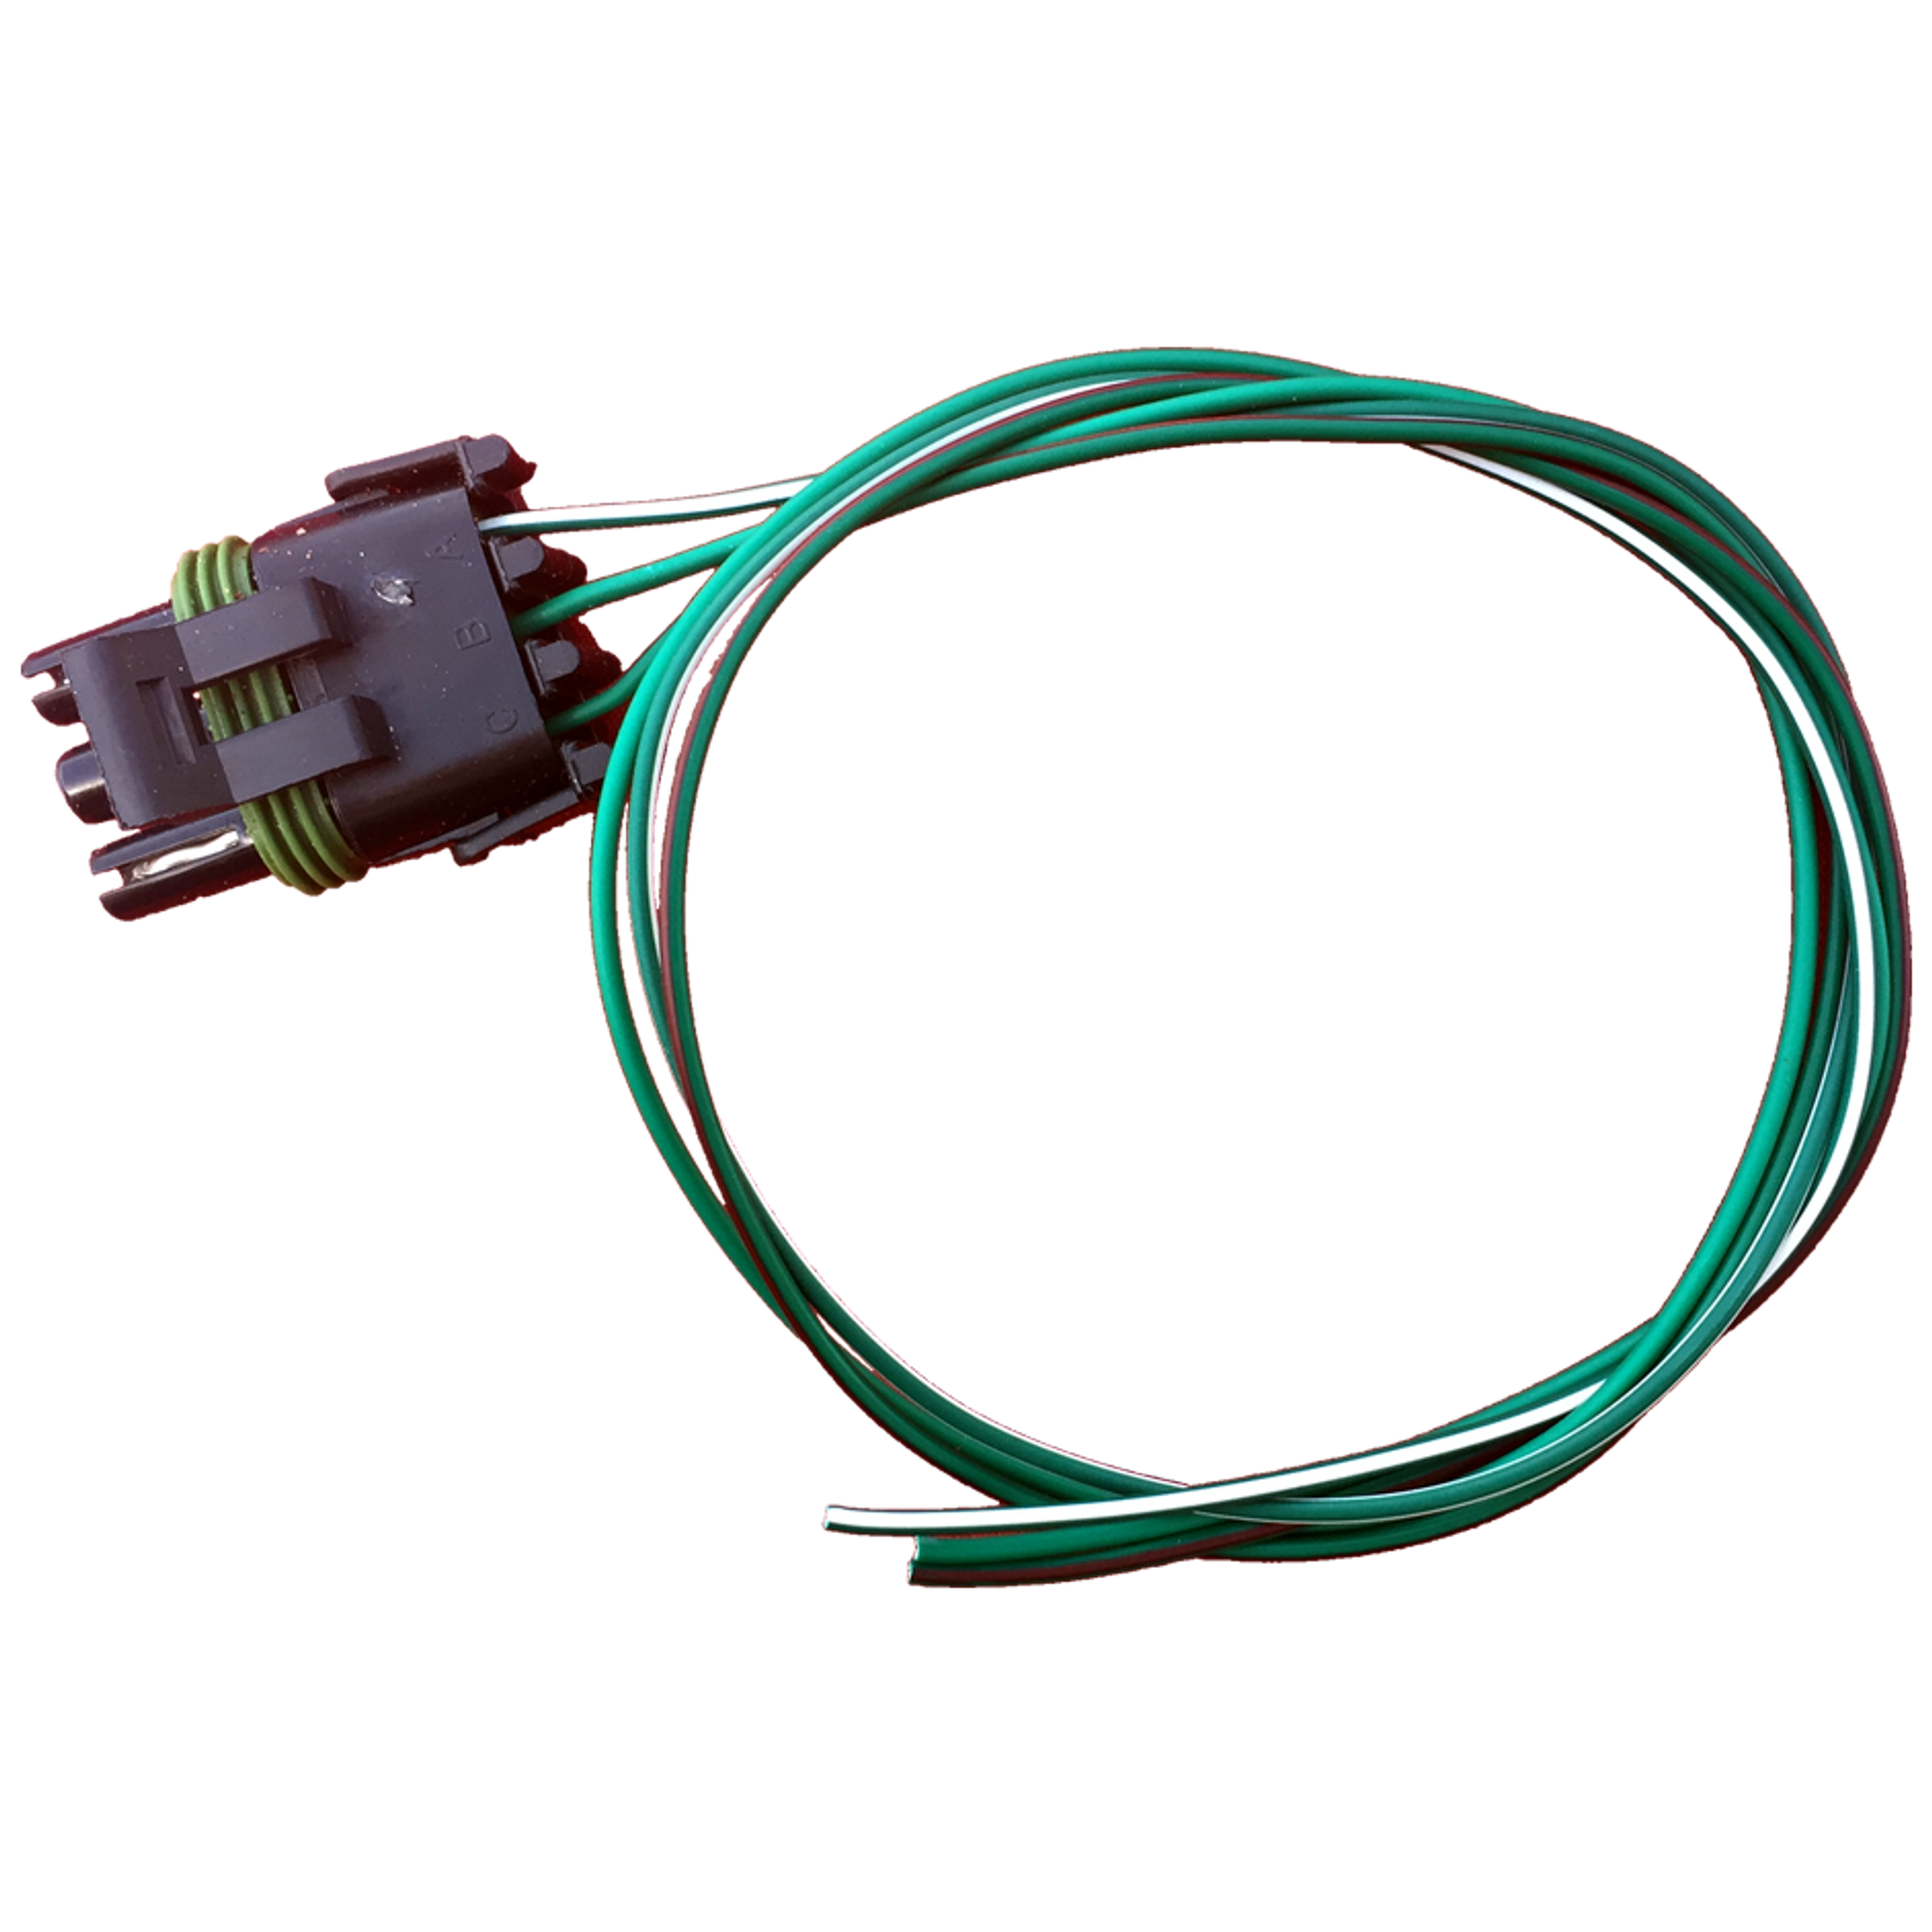 Acculink Tps Pigtail Wiring Loom Hgm Automotive Electronics Looms